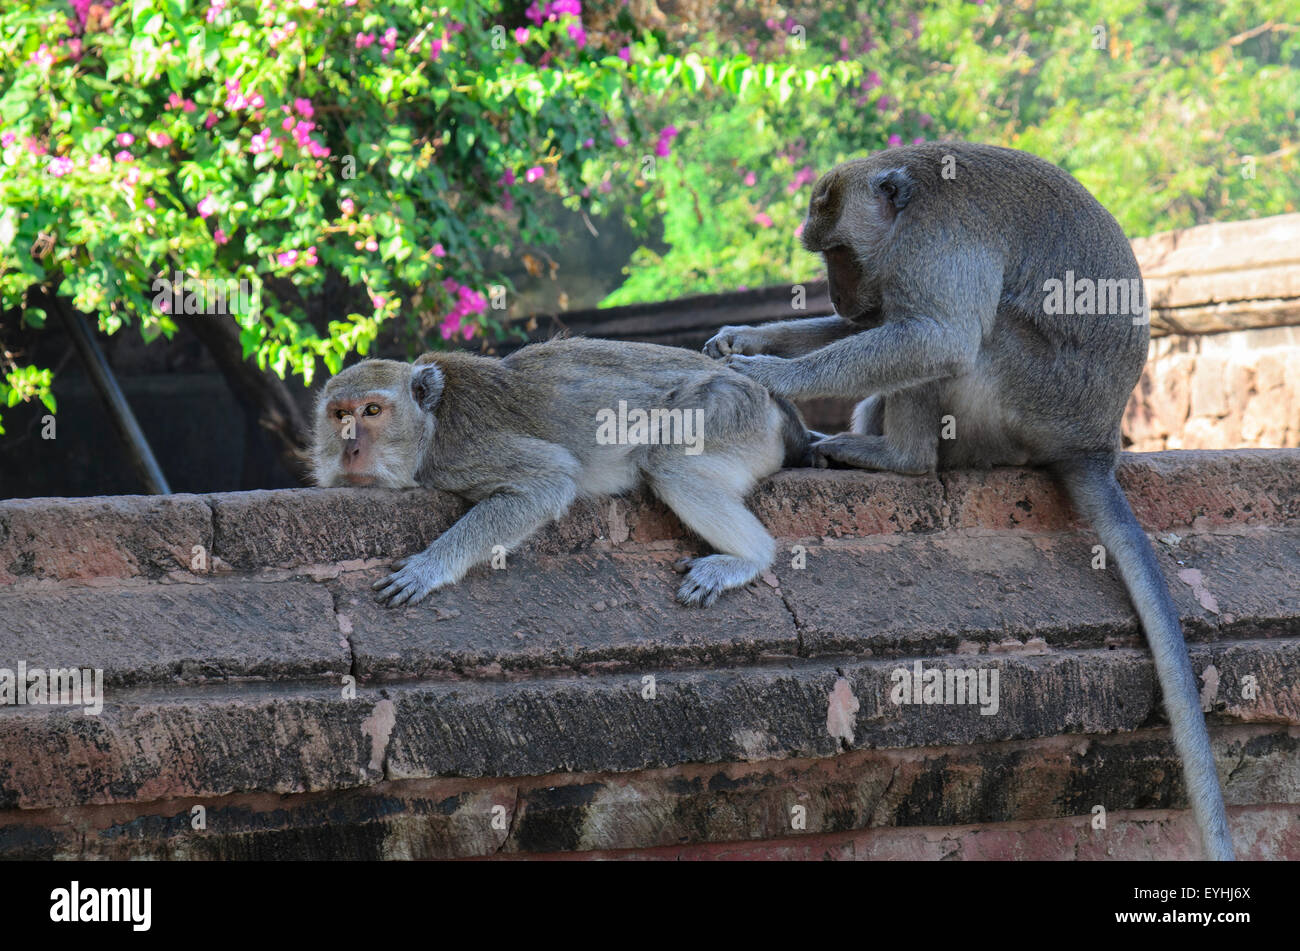 A crab eating or long tailed macaque monkey, Macaca fascicularis, cleans the fur of another, Pemuteran Monkey Temple, - Stock Image